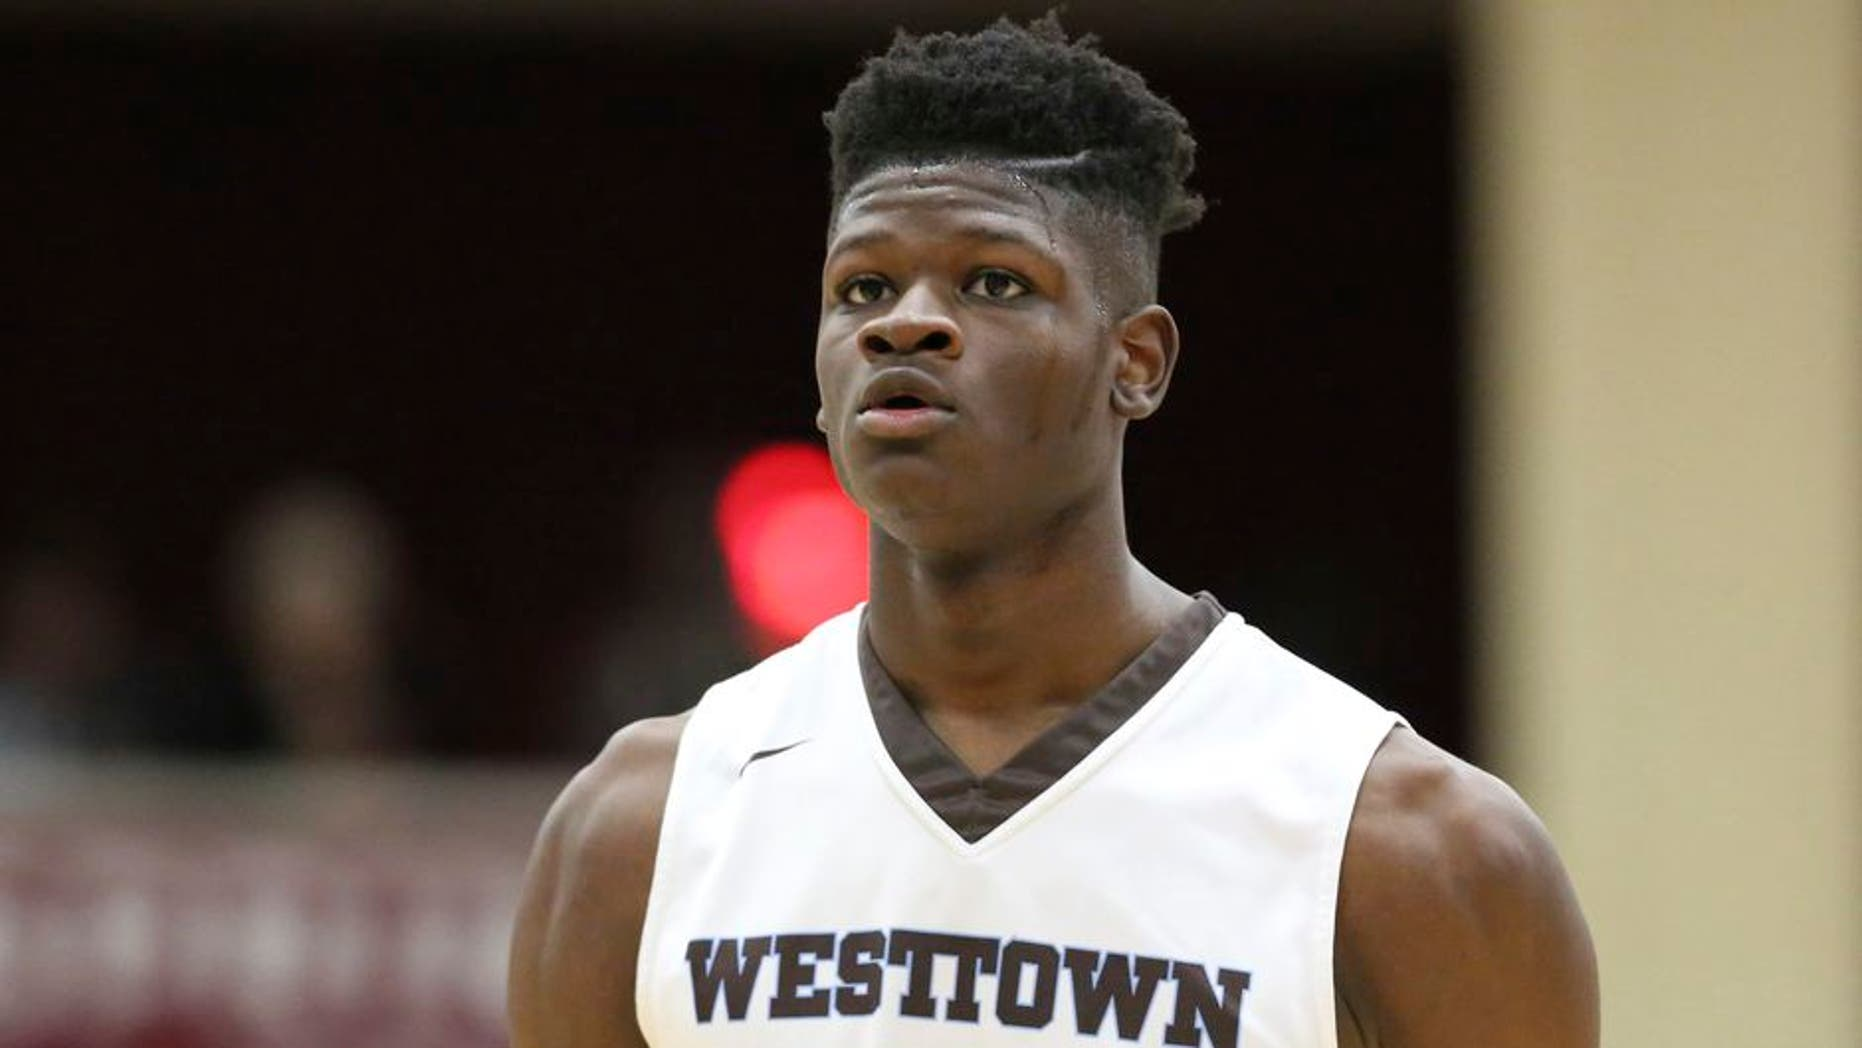 Westtown School's Mo Bamba #11 is seen against Hillcrest Prep during a high school basketball game at the 2017 Hoophall Classic on Saturday, January 14,, 2017, in Springfield, MA.. (AP Photo/Gregory Payan)